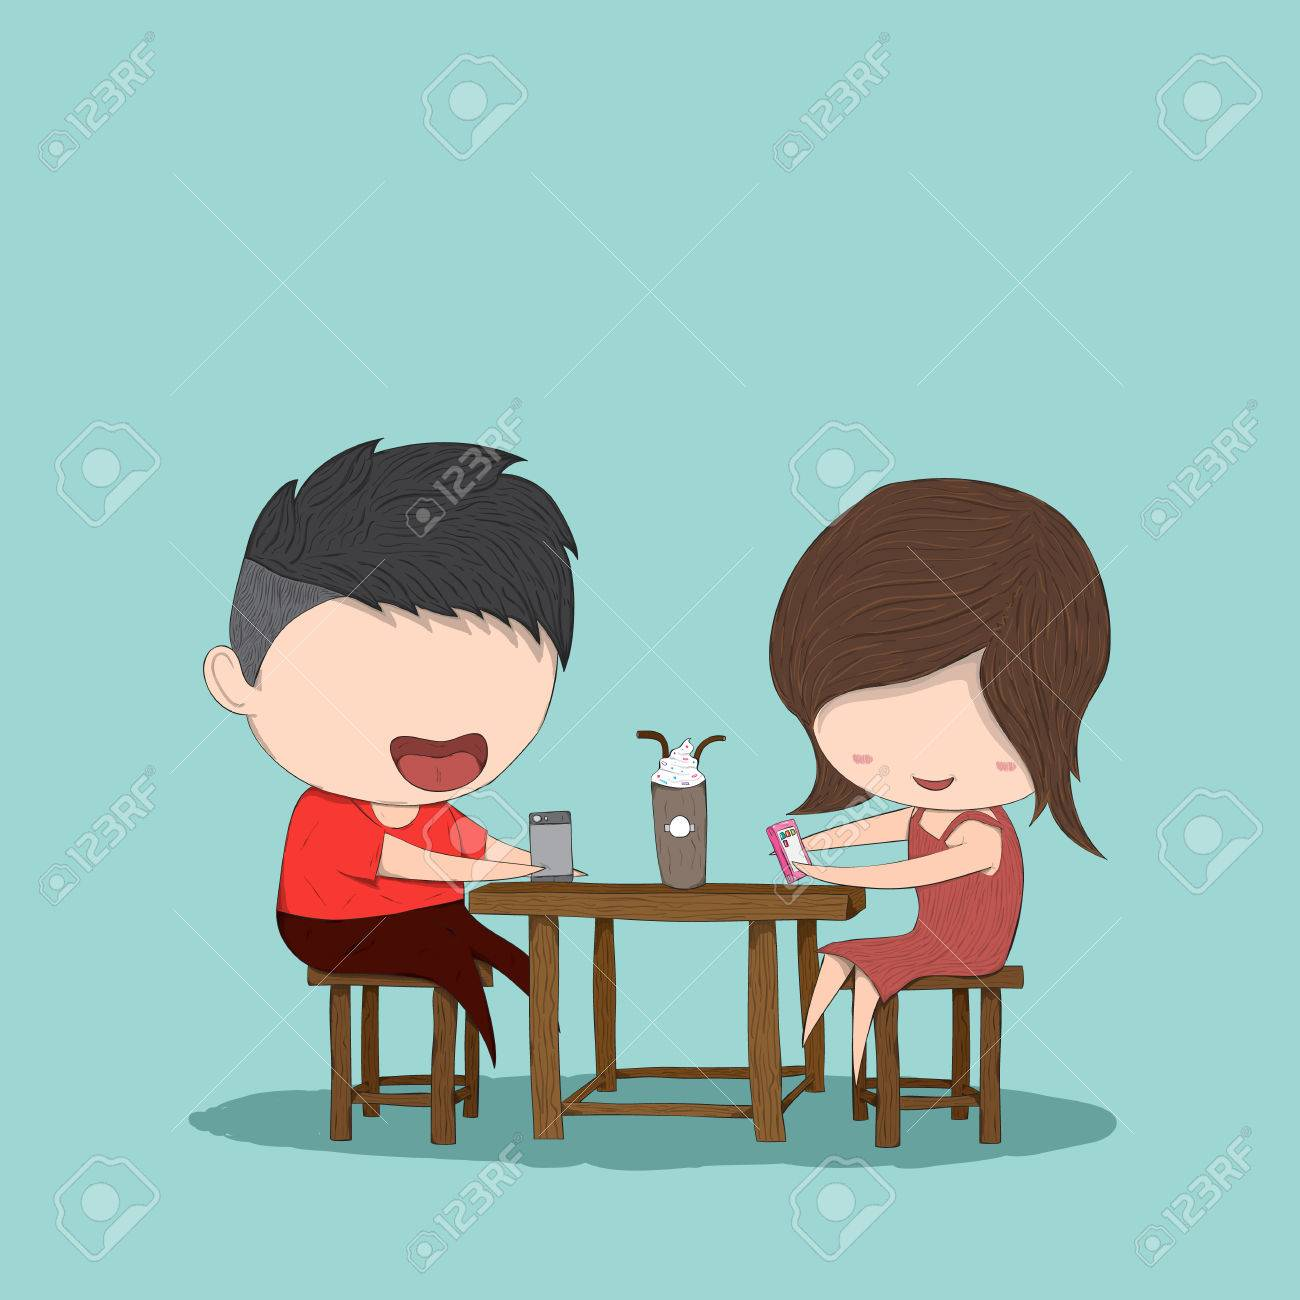 Male And Girl Teens Playing With Phone At Coffee Shop, Drawing By Hand  Vector Stock